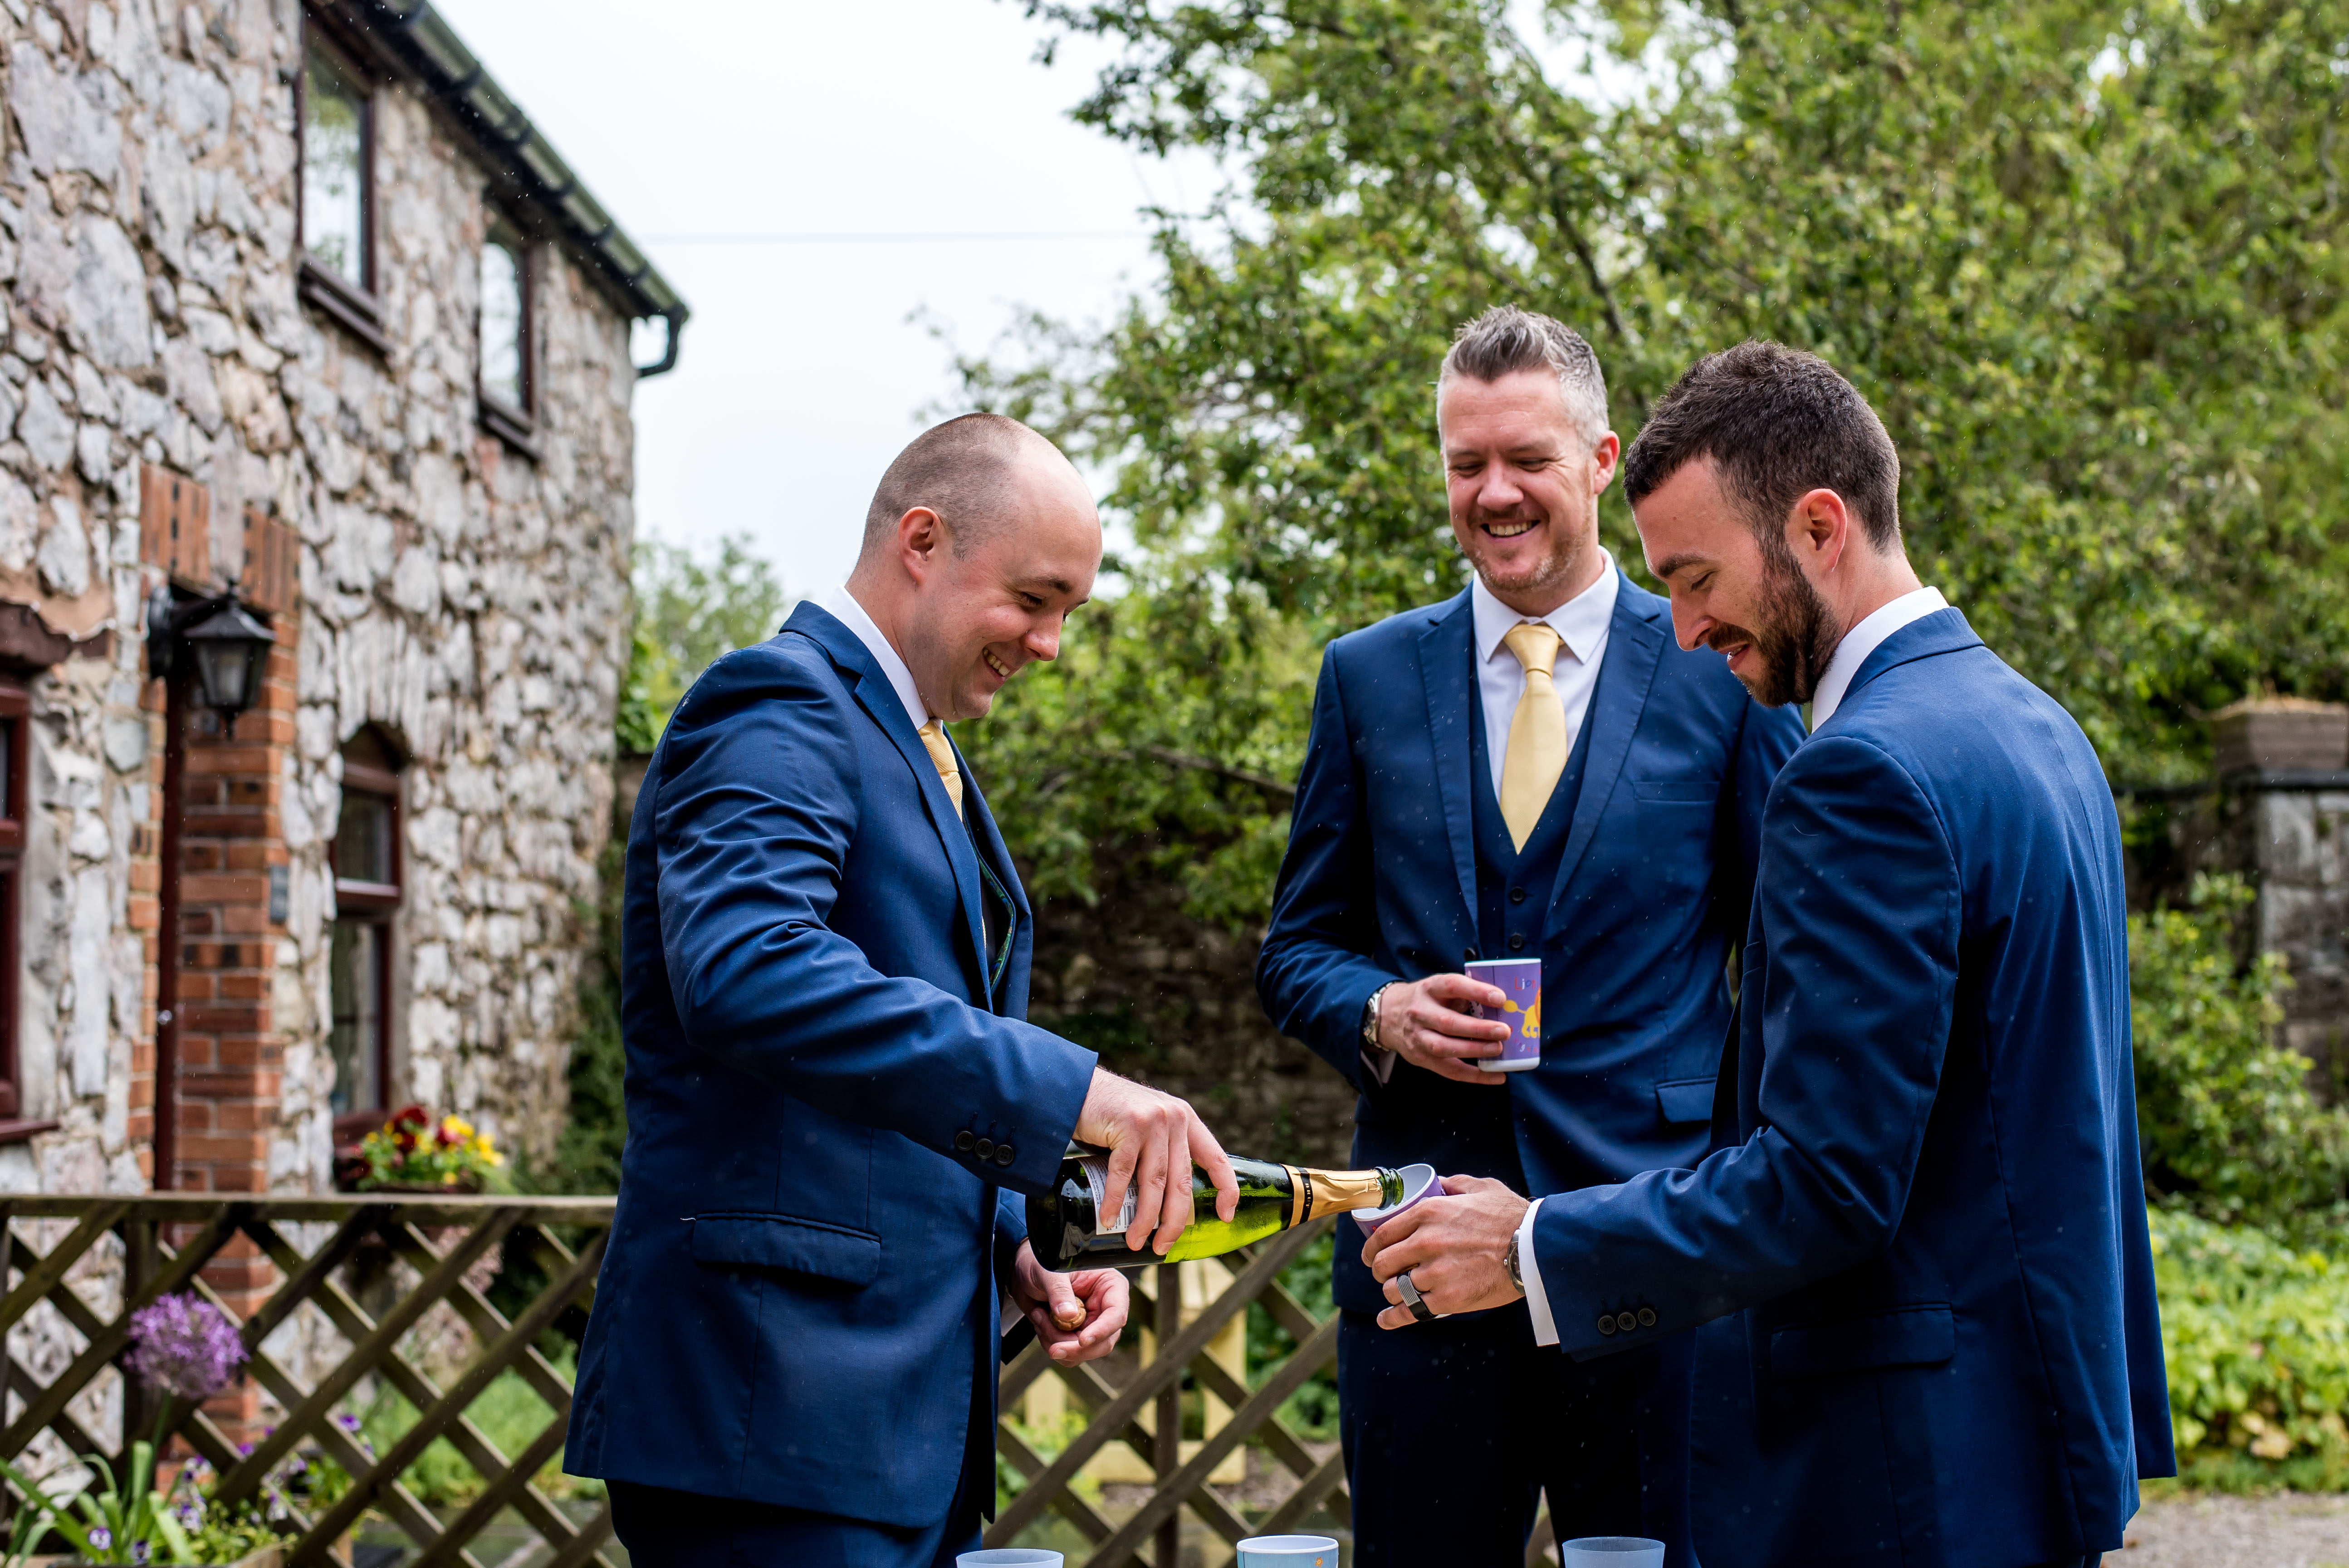 Wedding Photographer in Denbighshire taking pictures of the grooms party